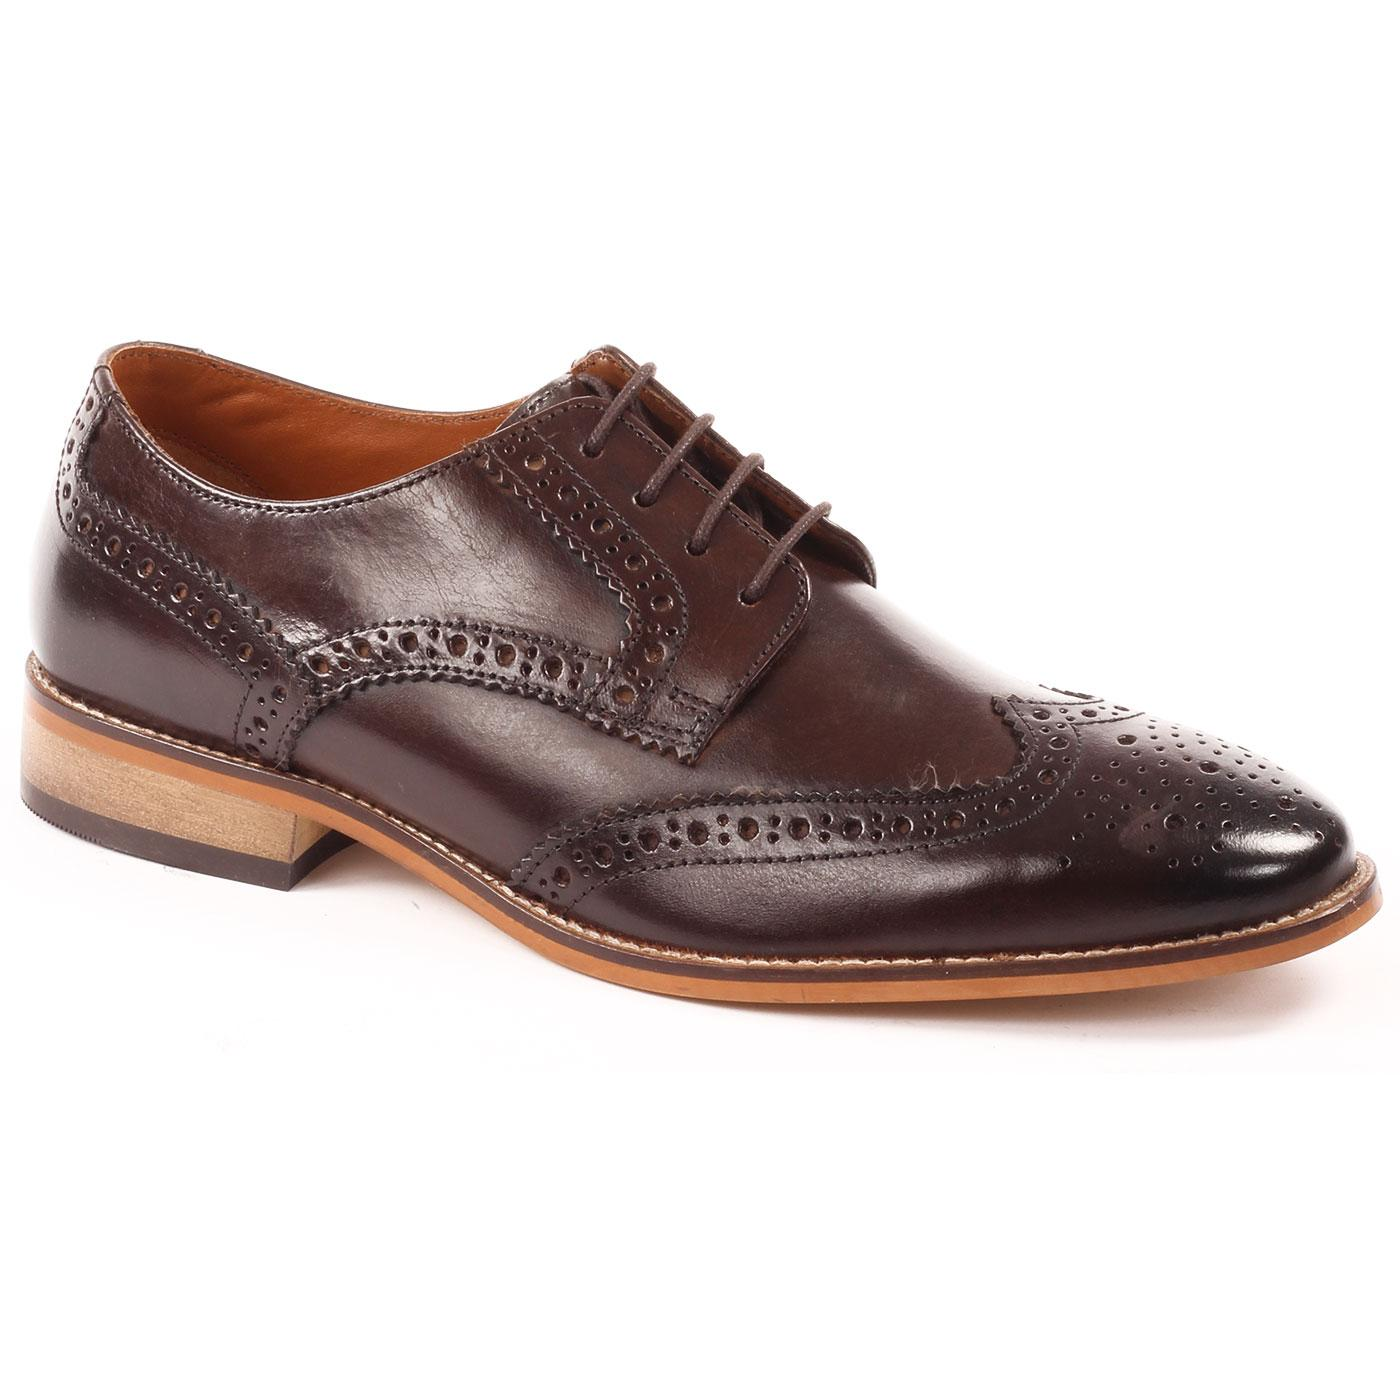 Thorpe IKON 60s Mod Leather Wingtip Brogues BROWN